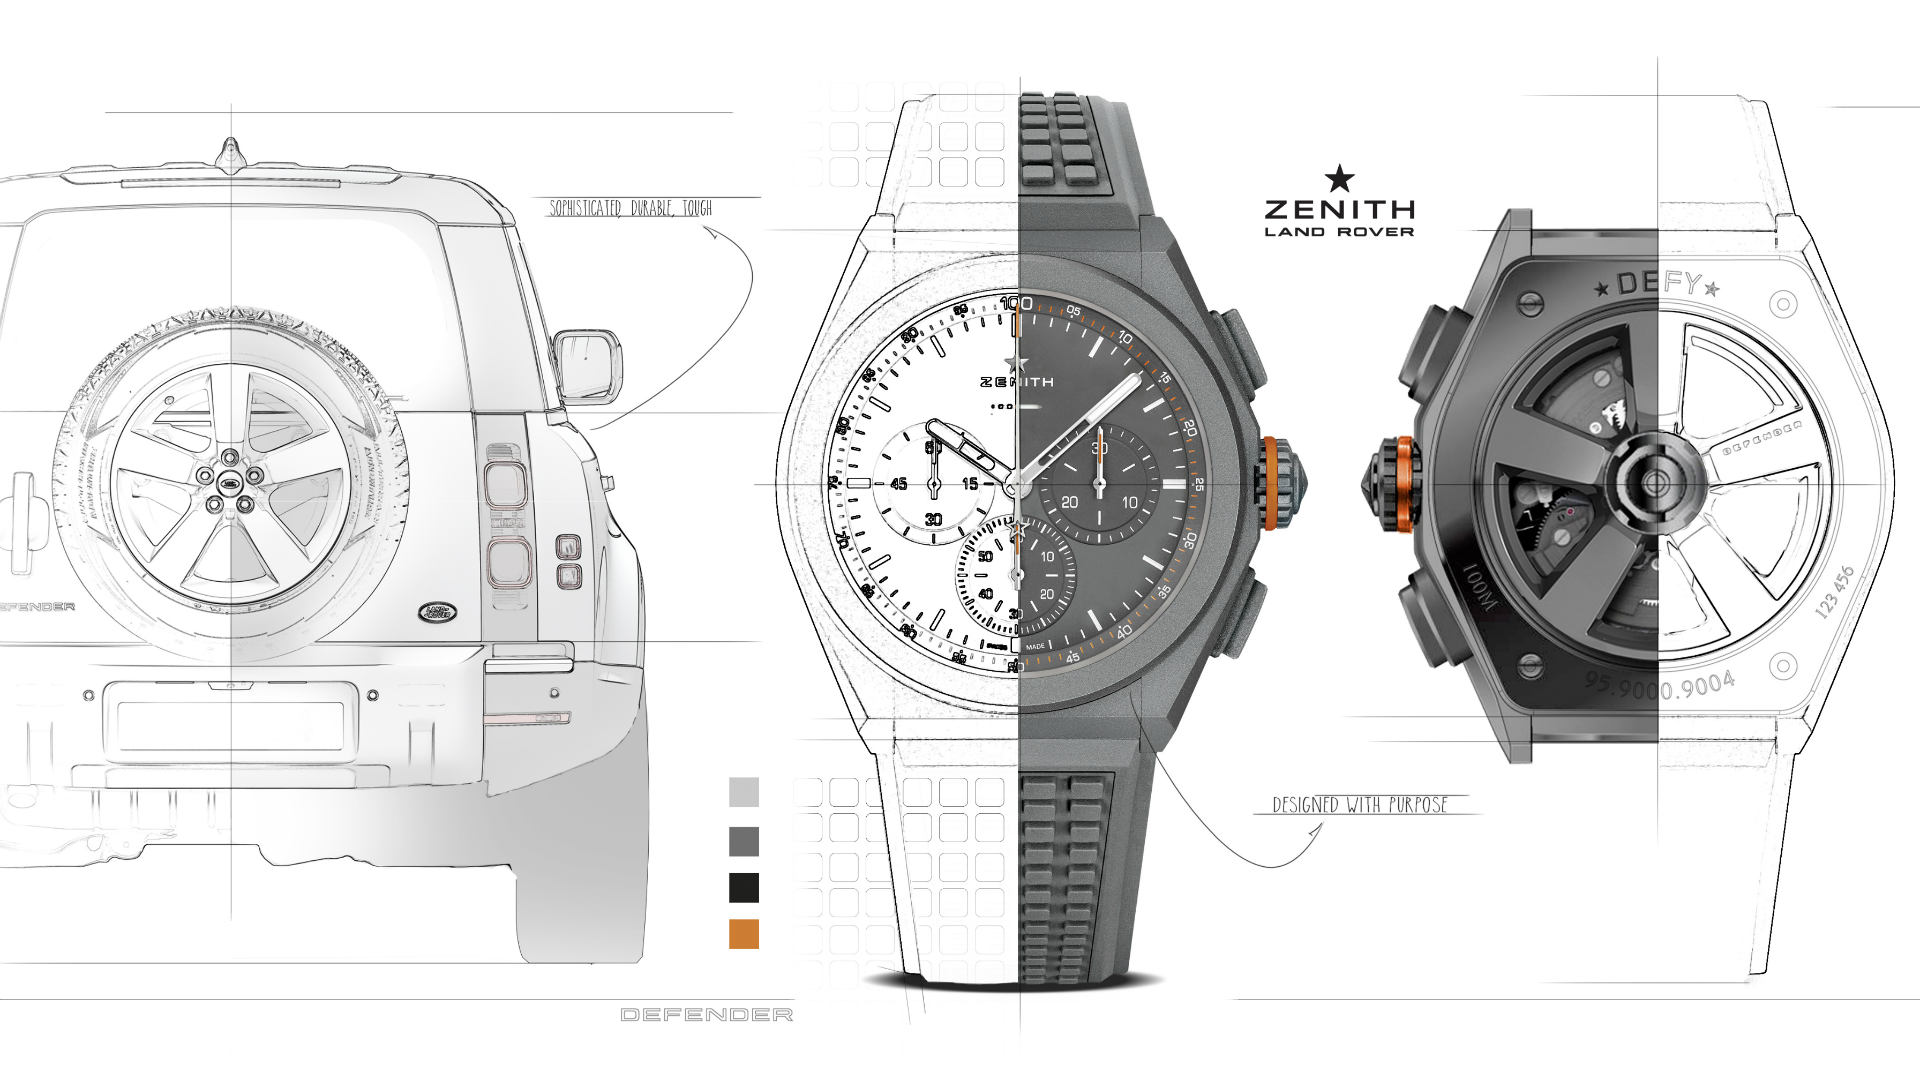 Land Rover Zenith Defy 21 Watch Graphic